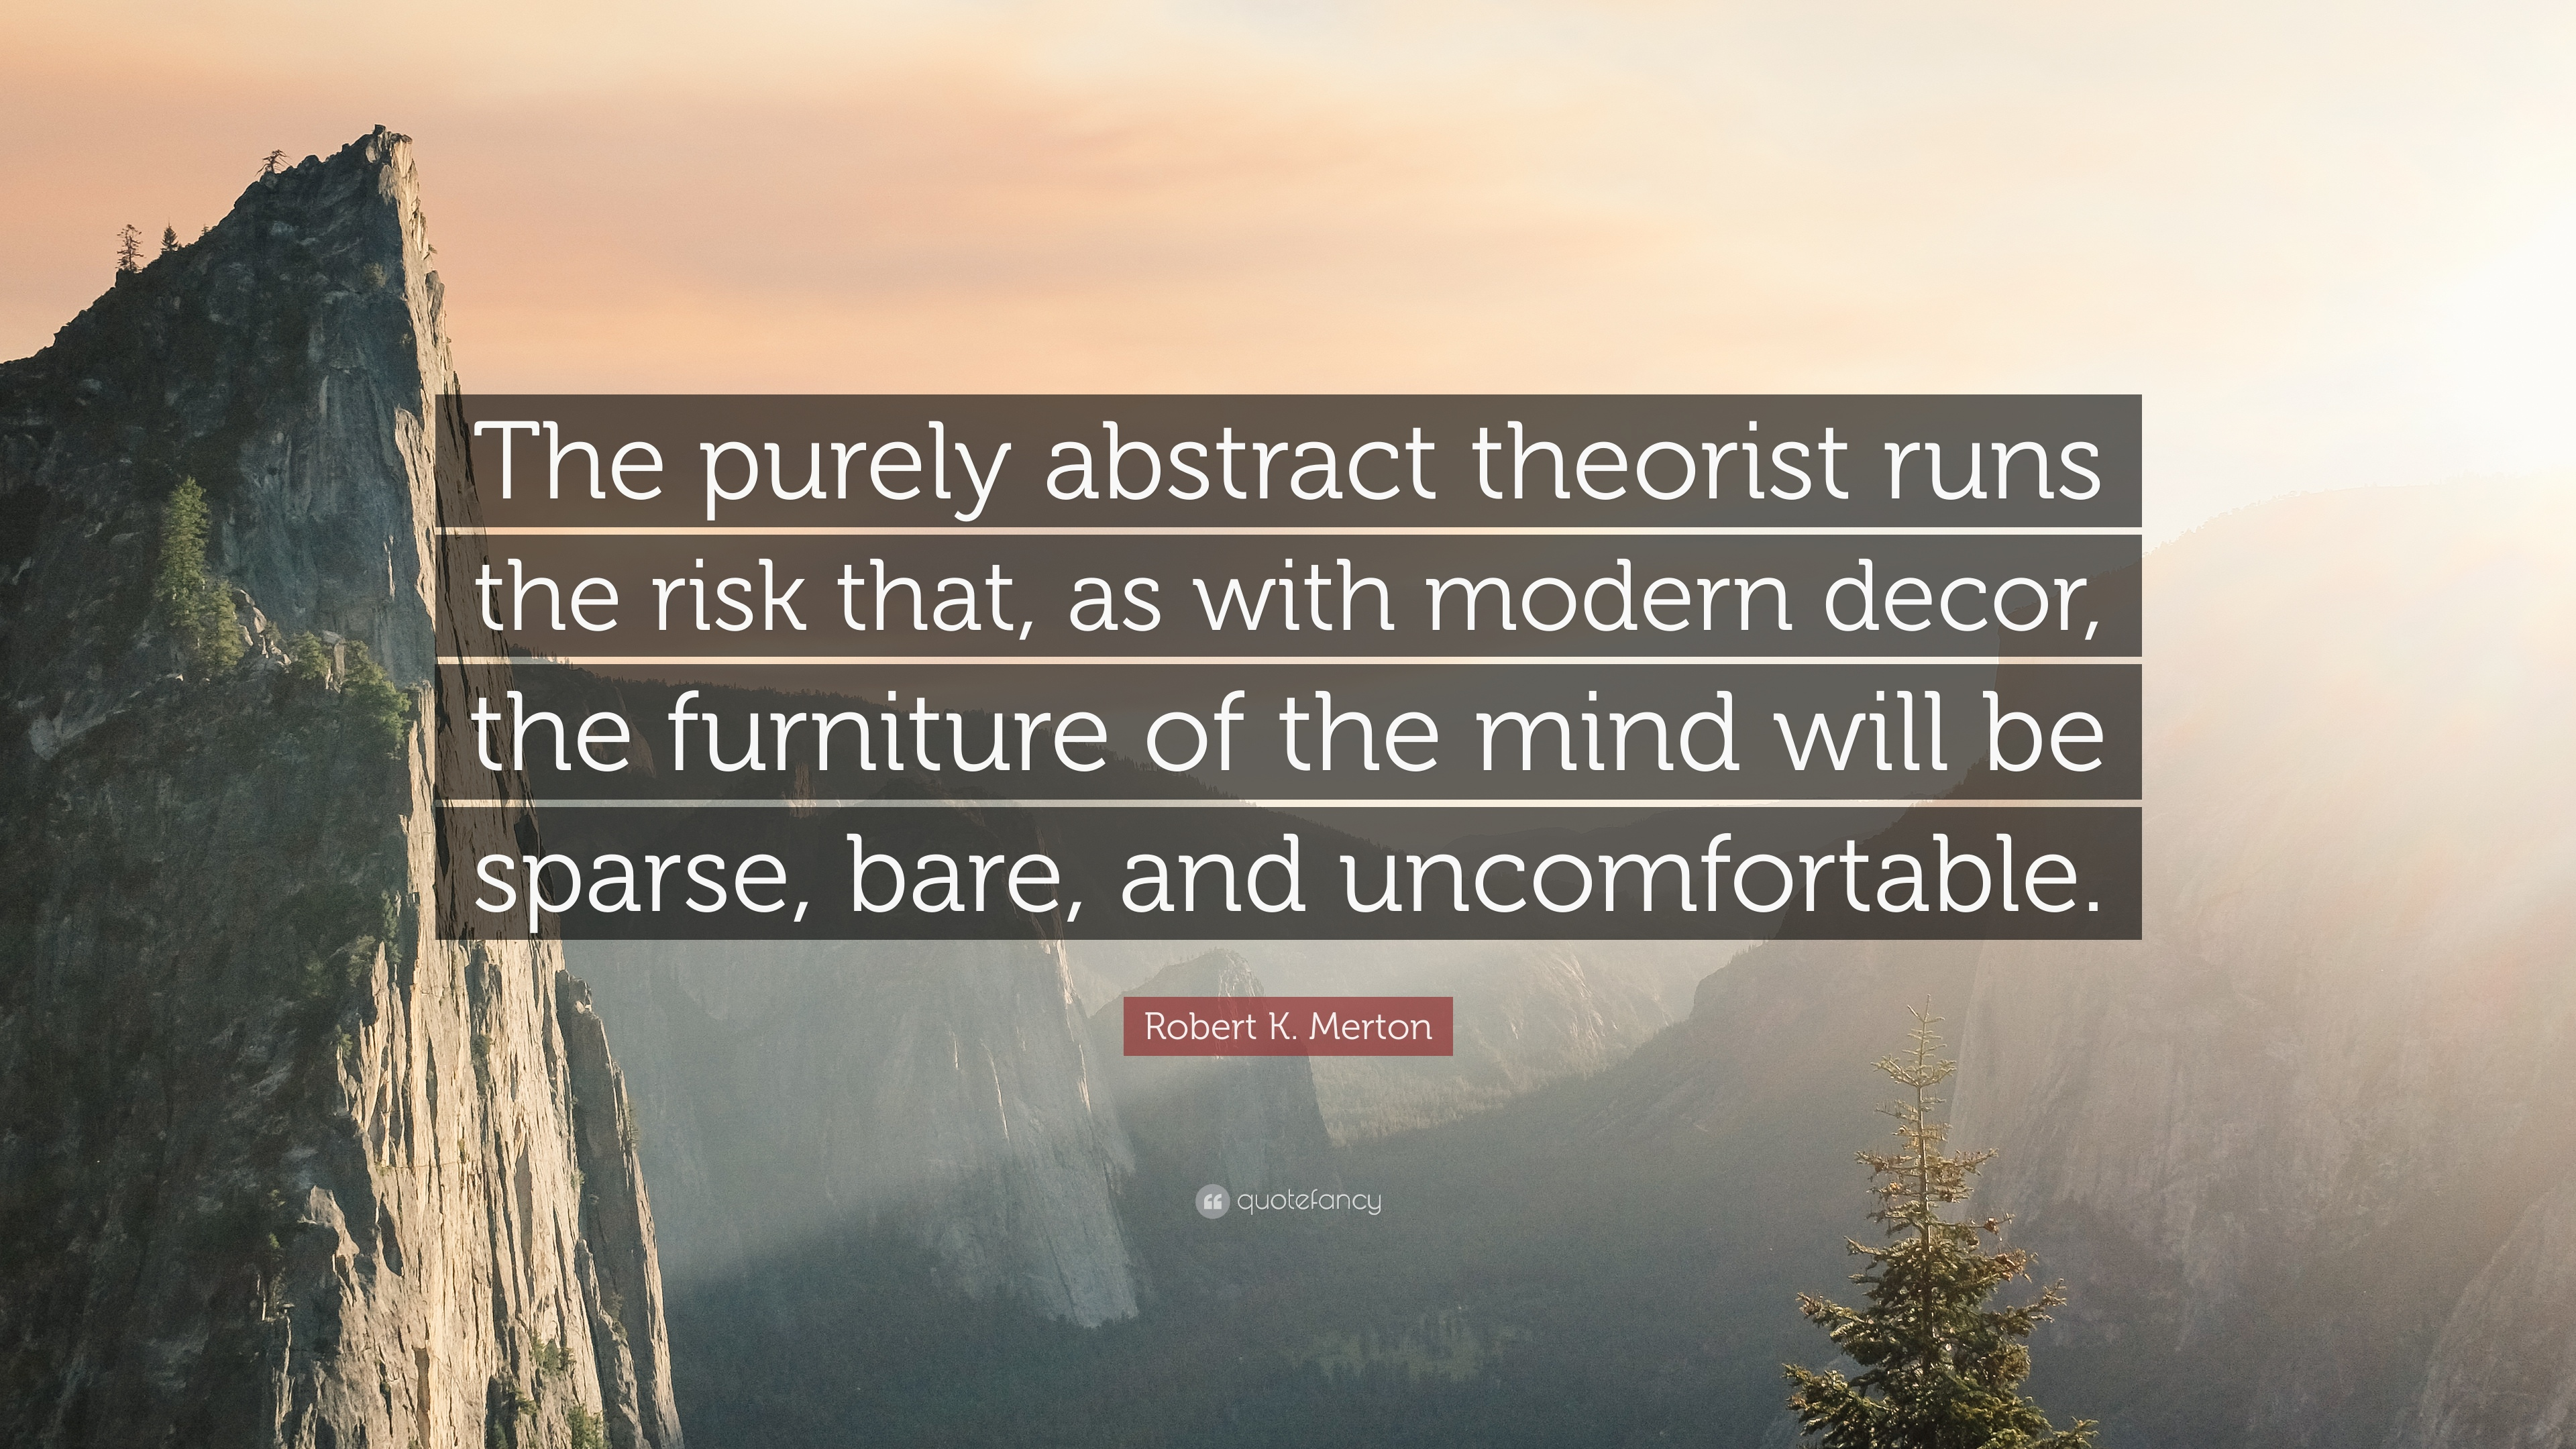 Robert k merton quote the purely abstract theorist runs the risk that